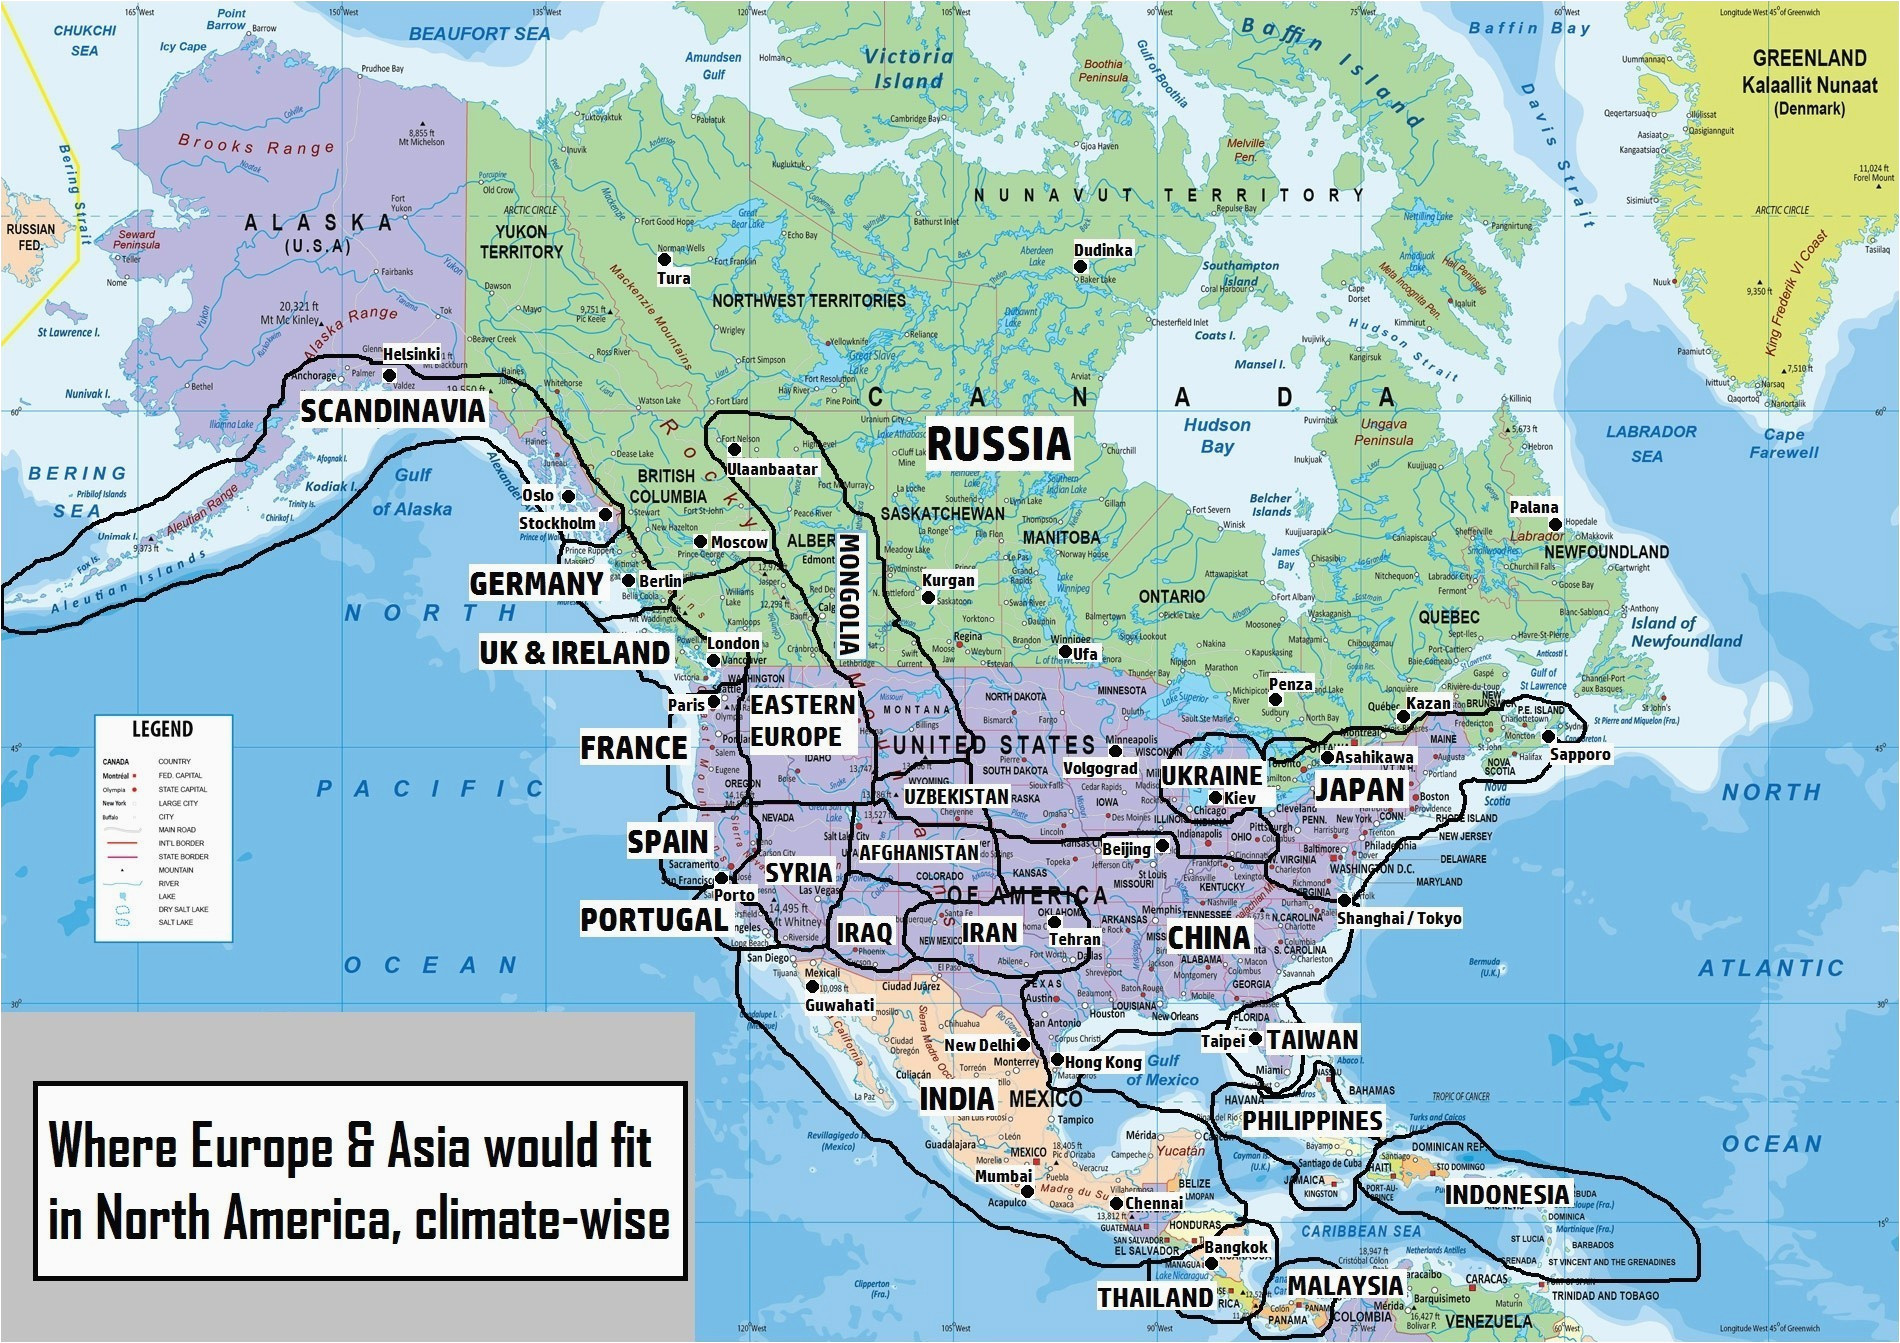 Map Erie Colorado United States Map and Regions Best Us Map New York  Regions Us Map on south us region map, new jersey regions map, nj 4 regions map, geographic regions united states map,